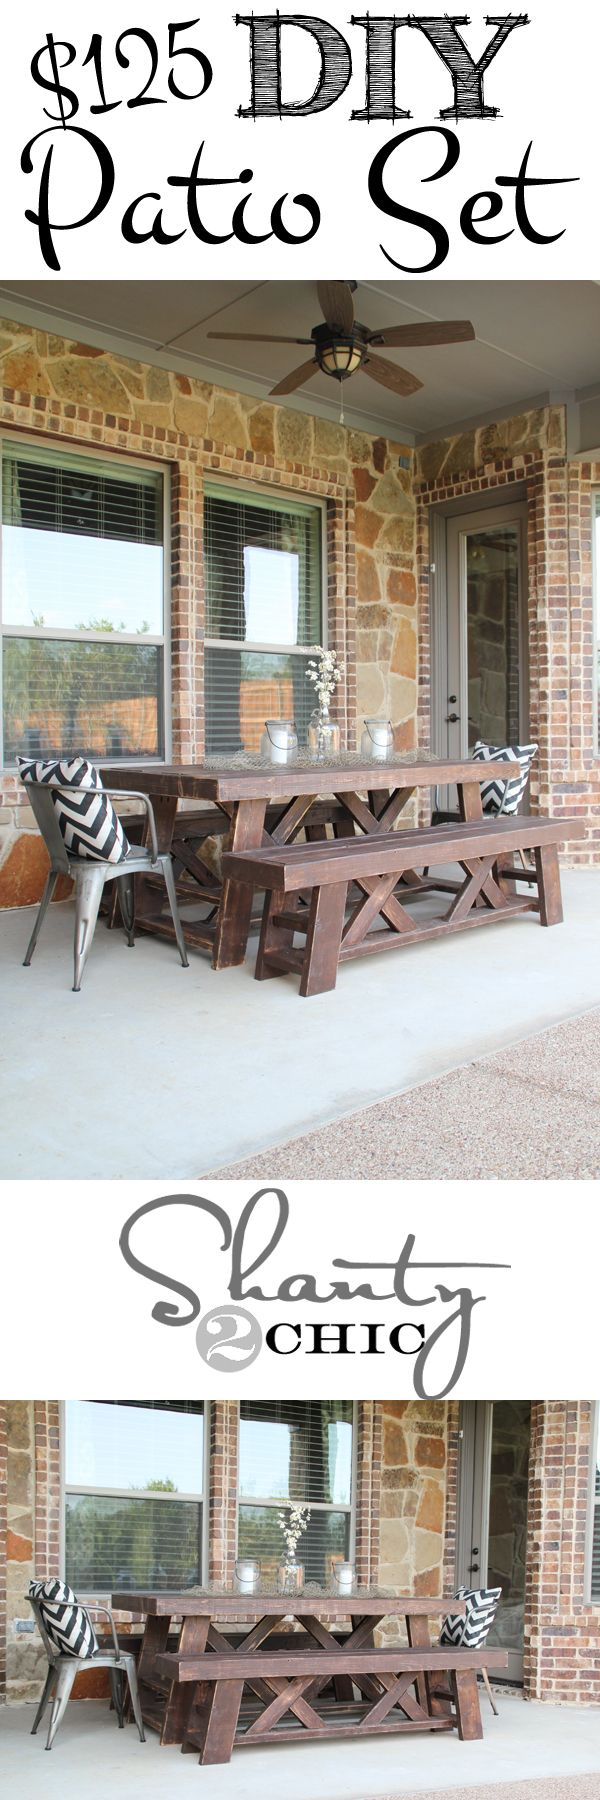 DIY Outdoor Table and Benches - FREE Printable Plans!!